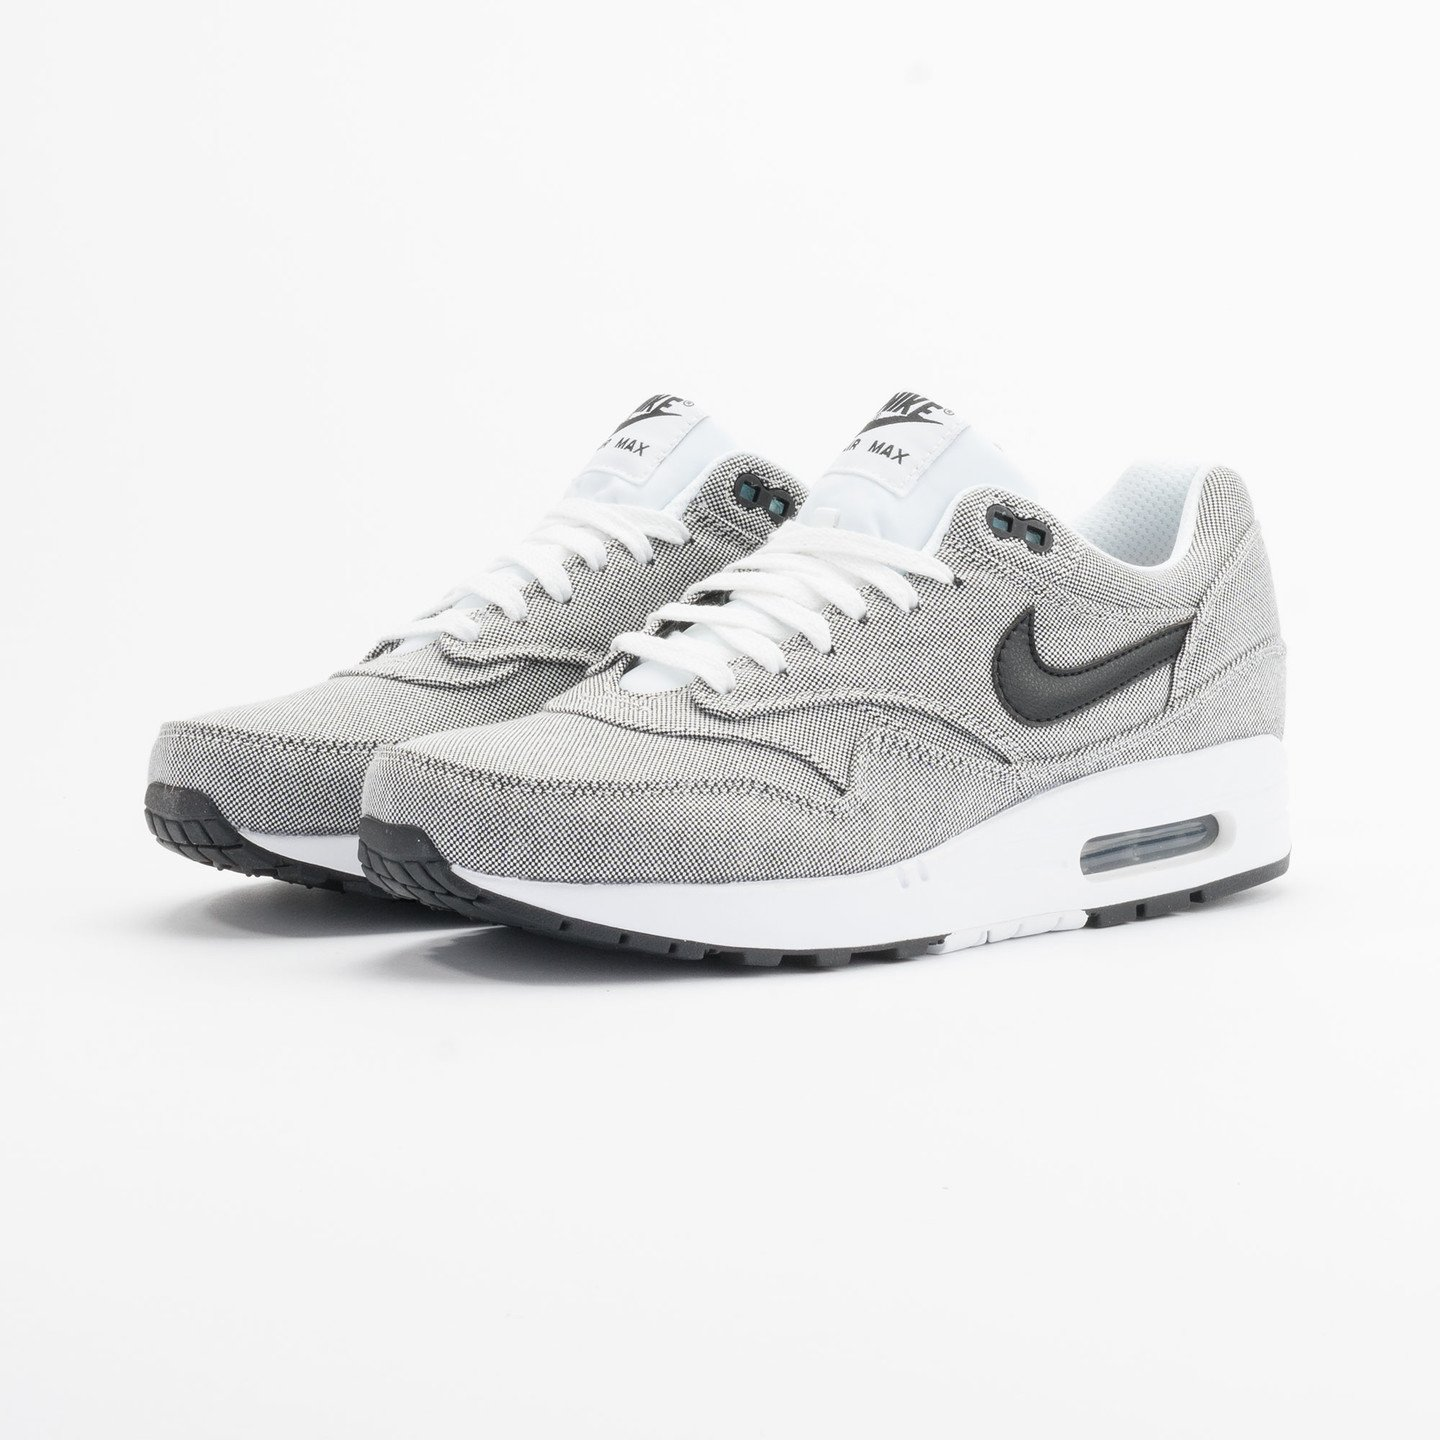 Nike Air Max 1 Prm Picknick Pack Black/White 512033-103-47